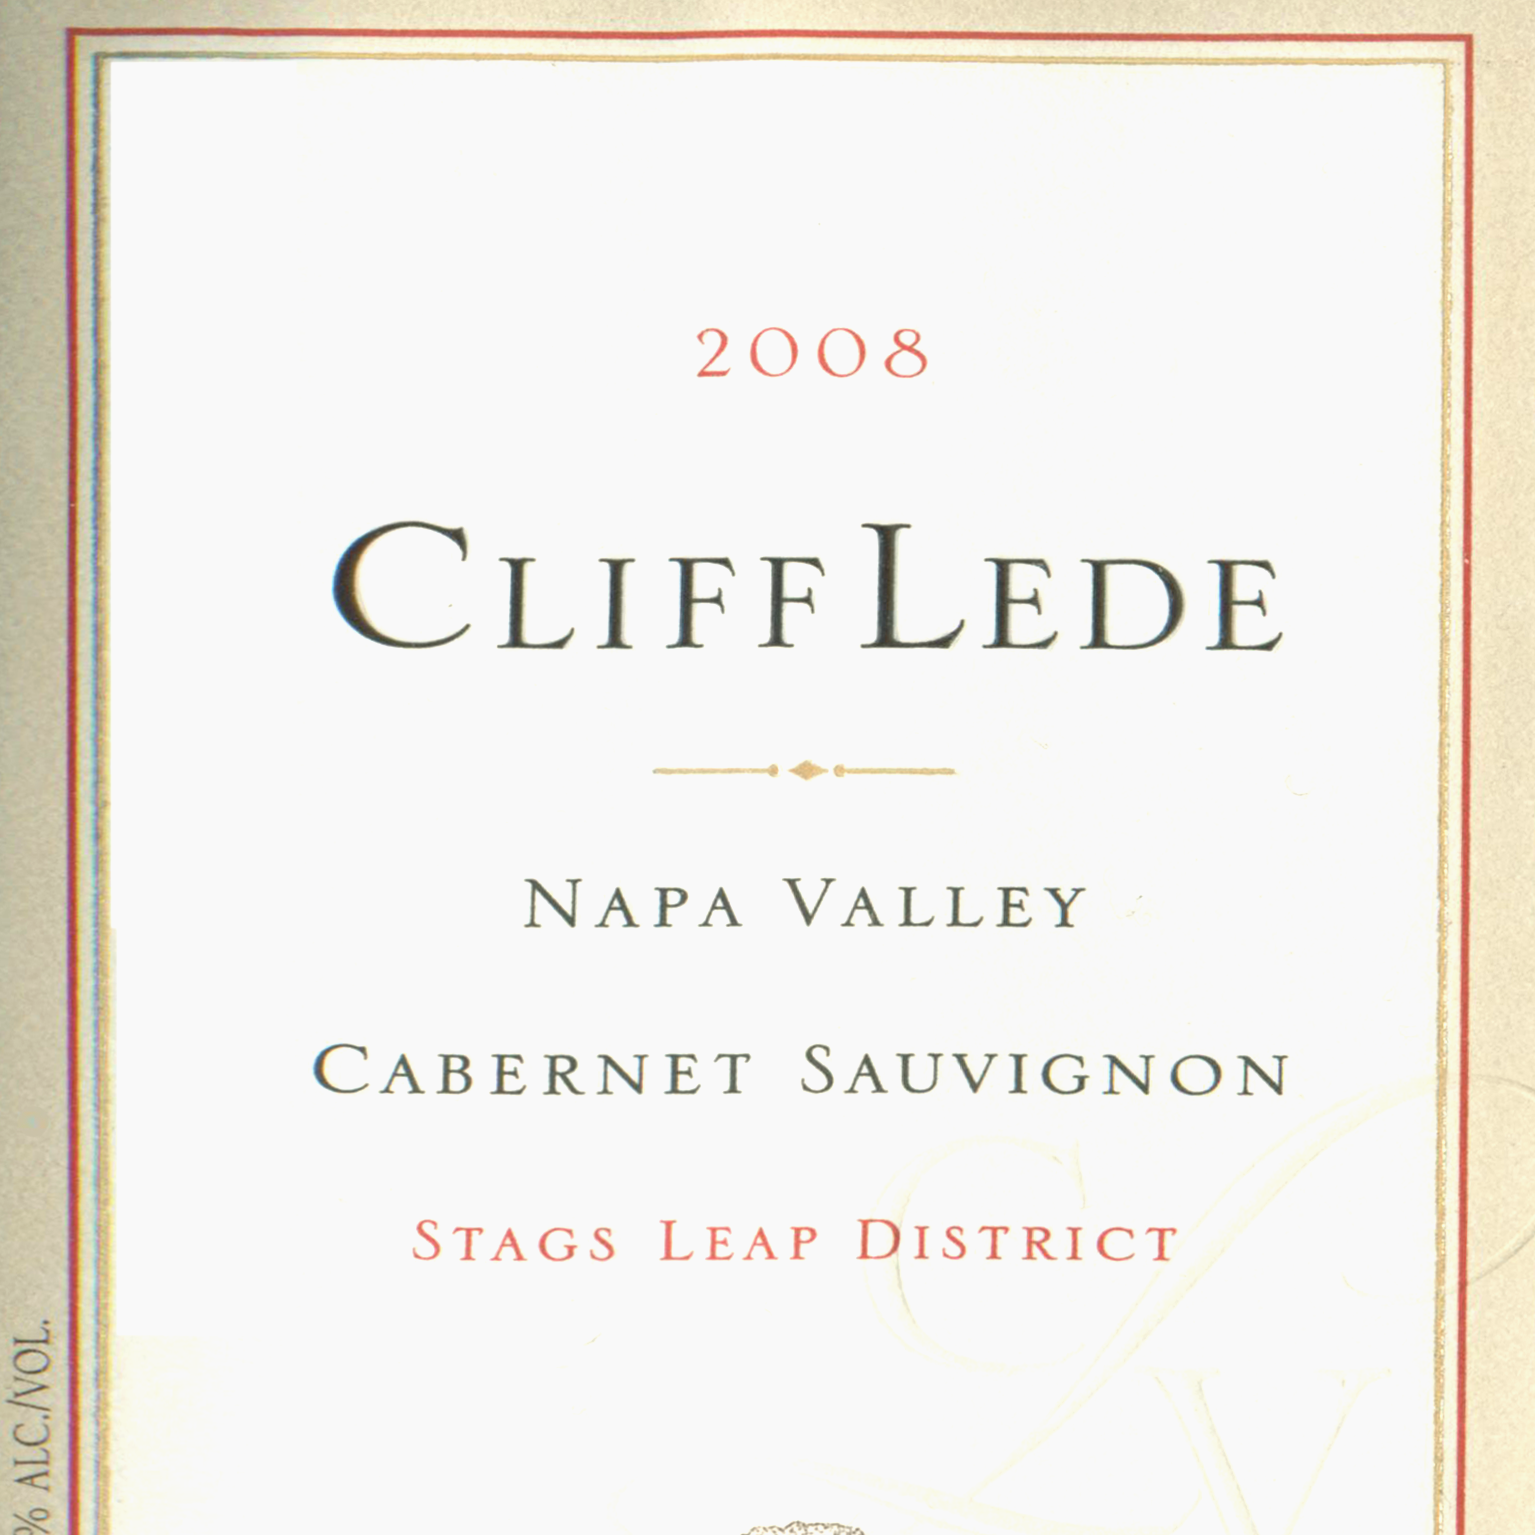 CLIFF LEDE VINEYARDS – WINERY & ADMIN. BUILDING